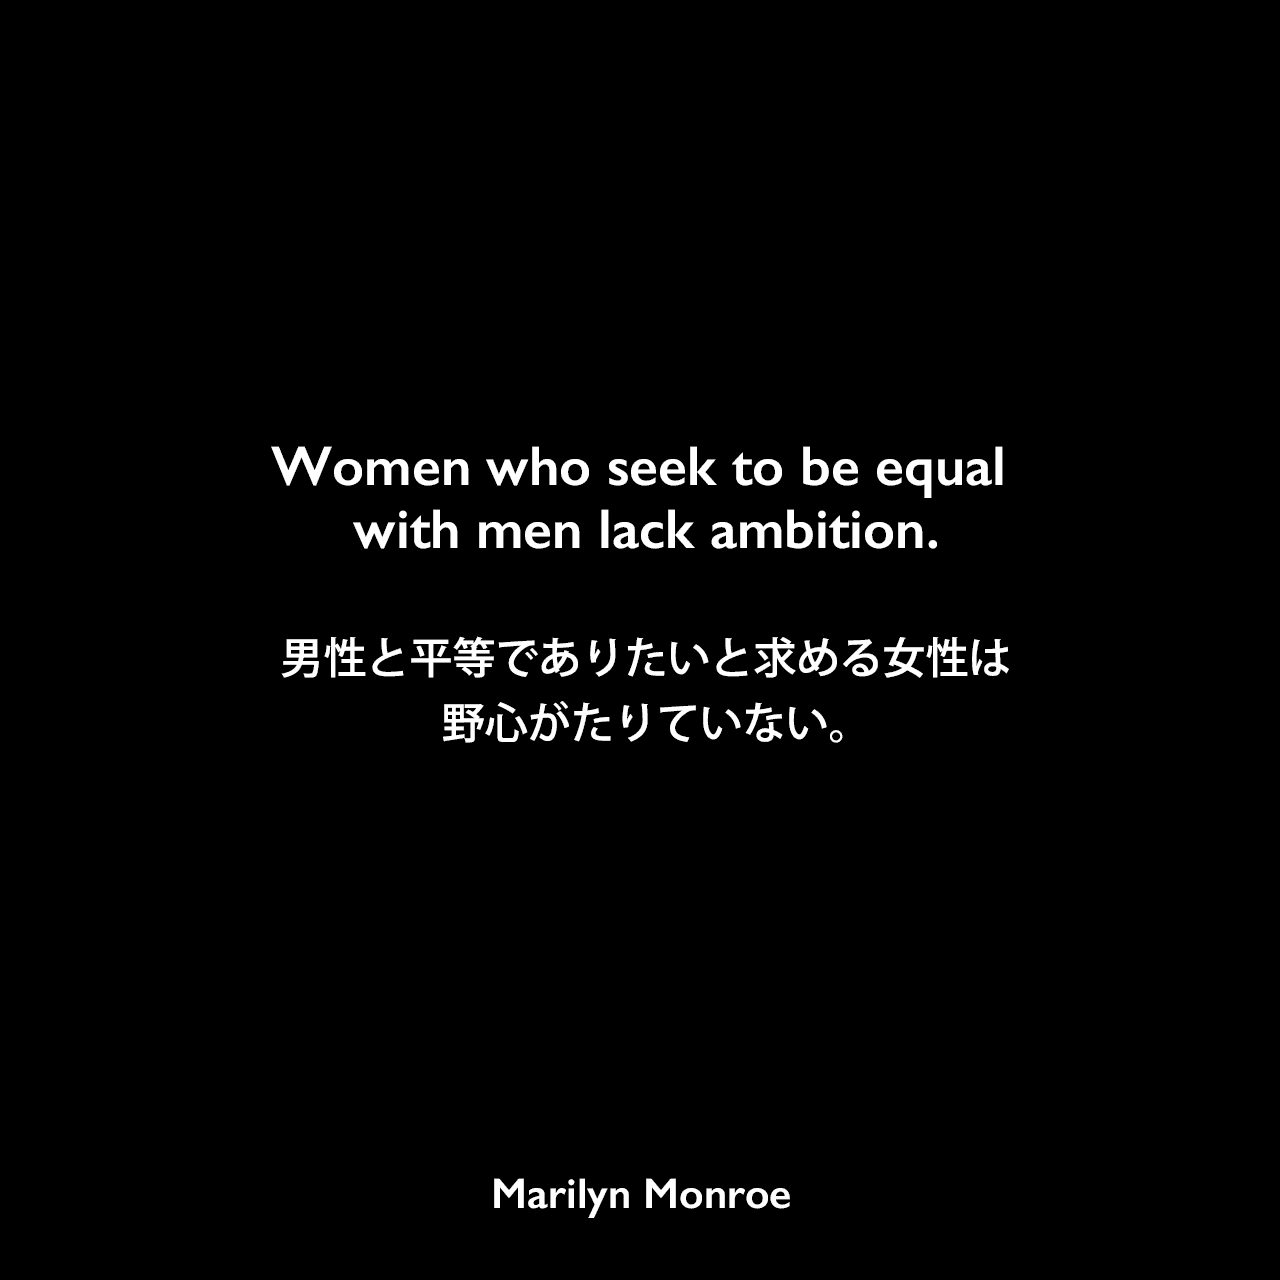 Women who seek to be equal with men lack ambition.男性と平等でありたいと求める女性は、野心がたりていない。Marilyn Monroe